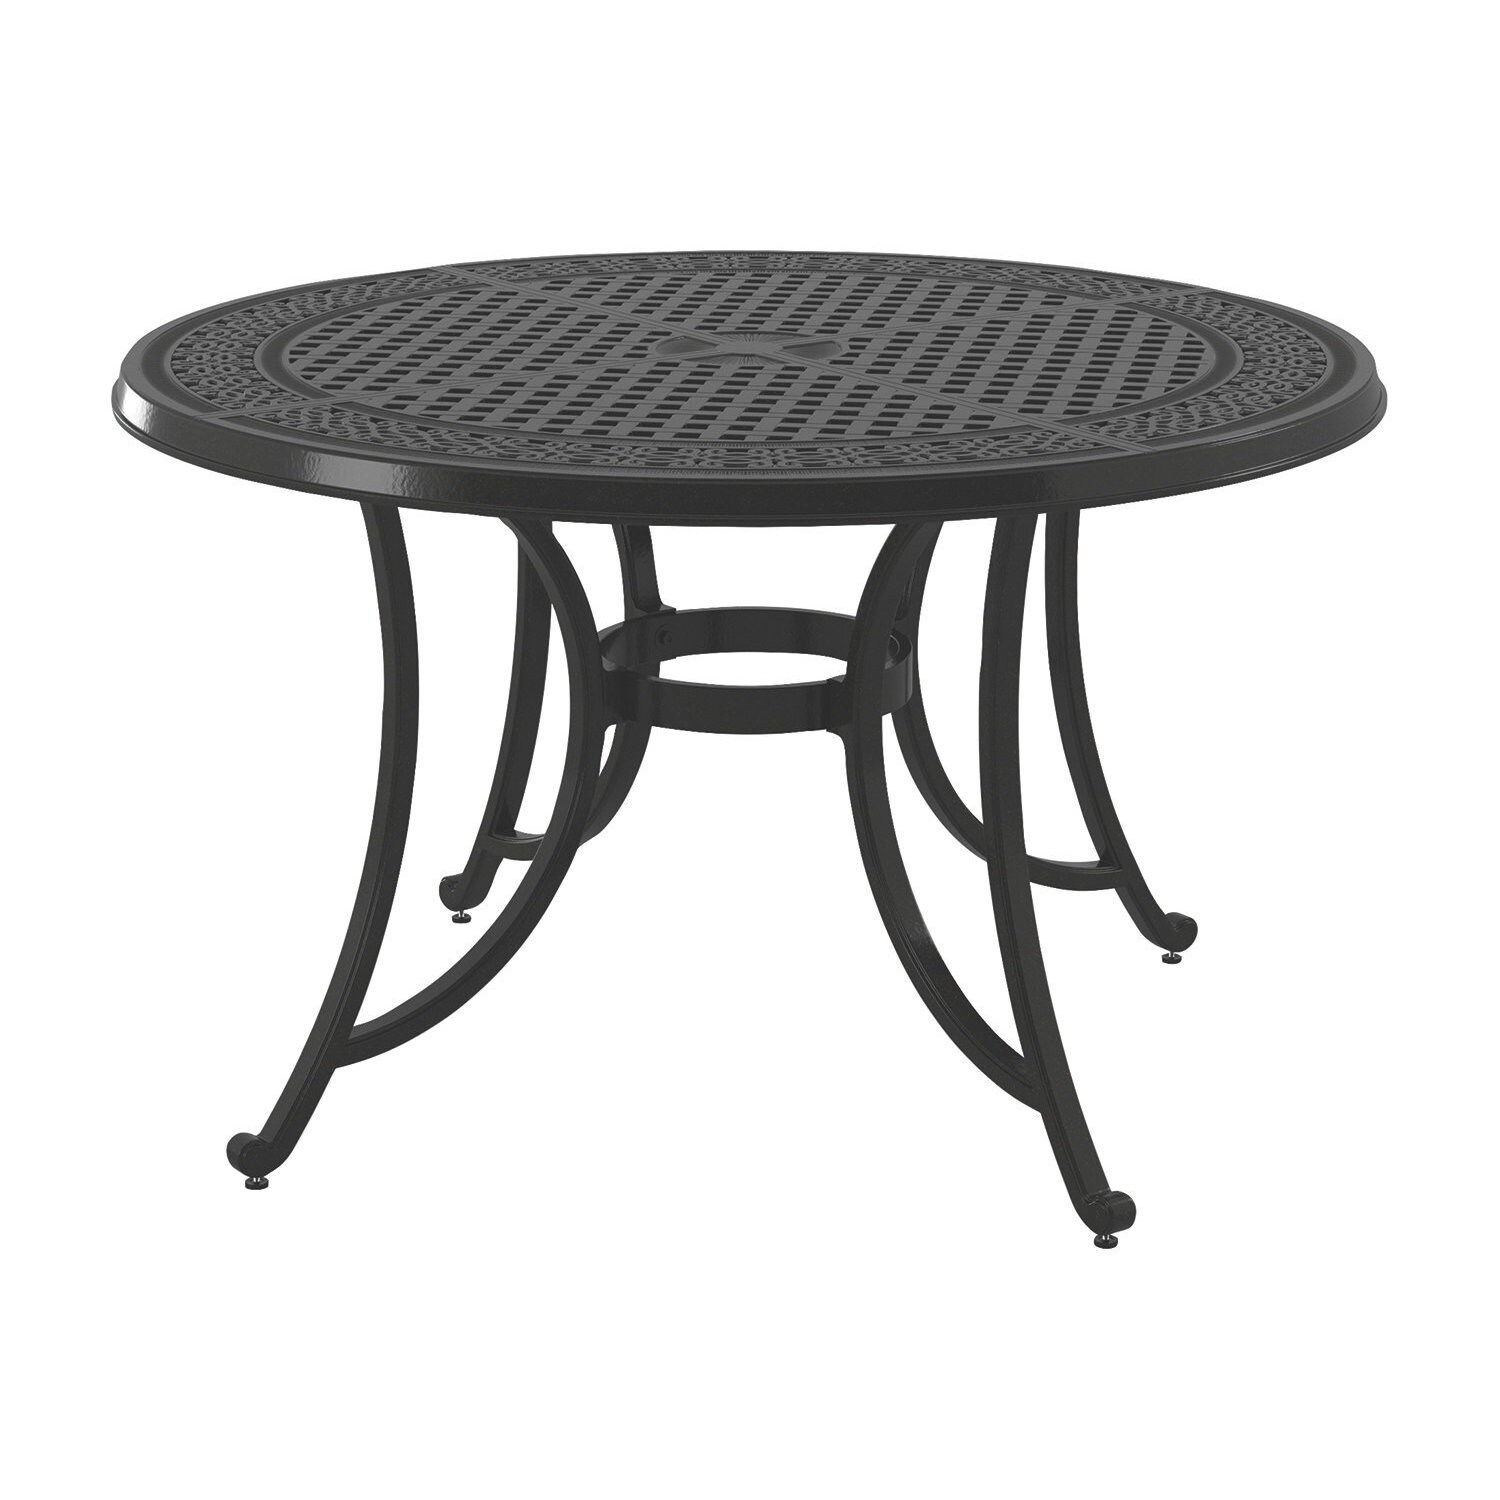 Signature Design By Ashley Burnella Brown Outdoor Round Dining Table With Umbrella Option